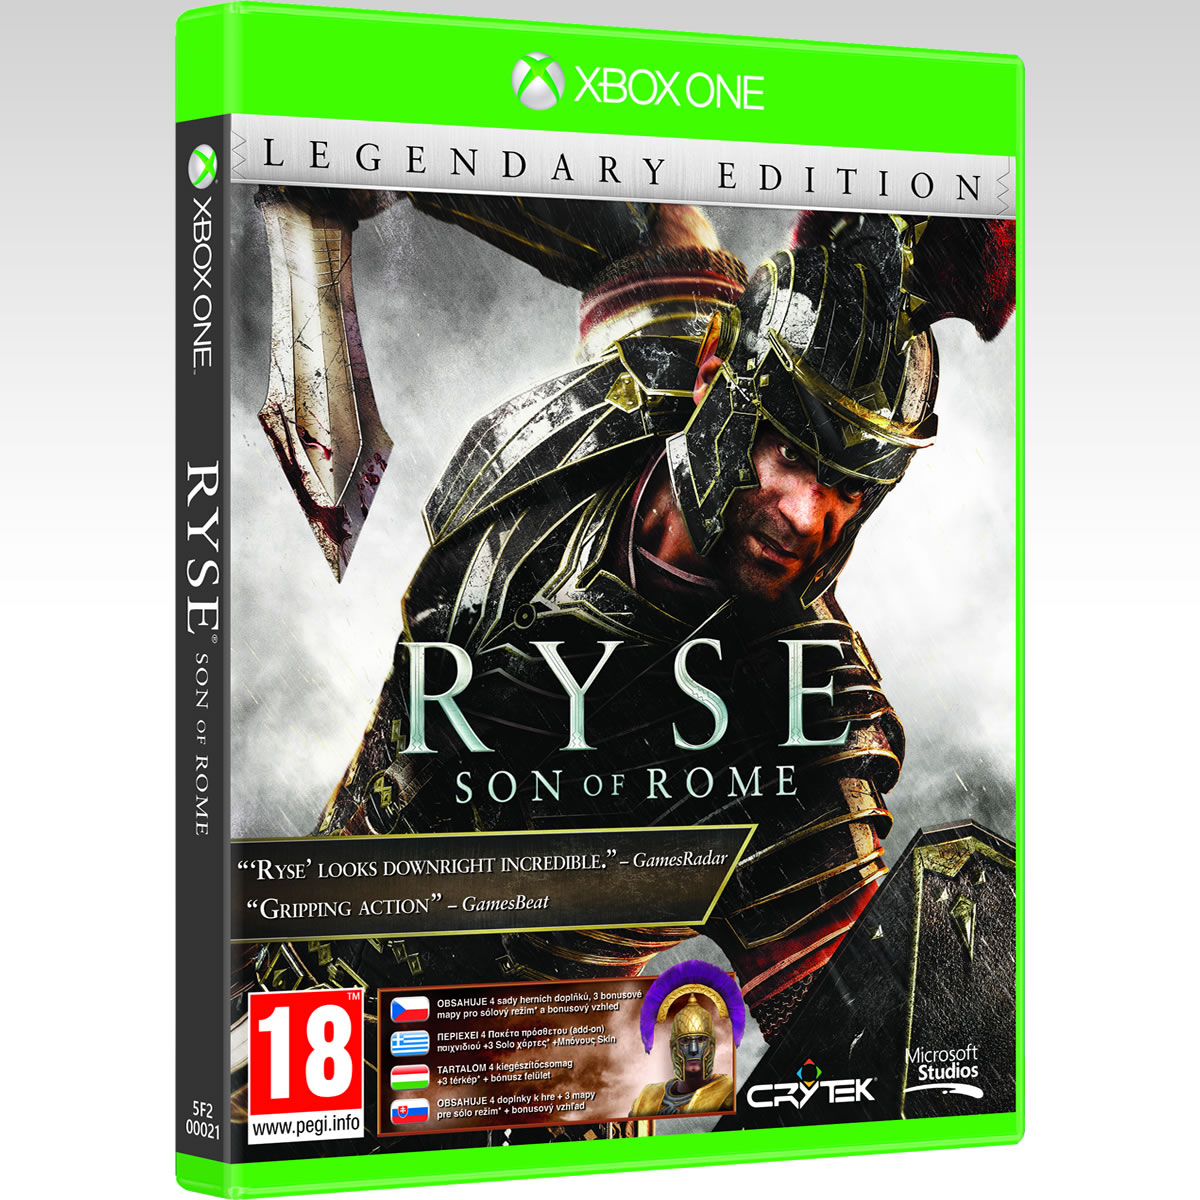 RYSE : SON OF ROME - LEGENDARY EDITION (XBOX ONE)